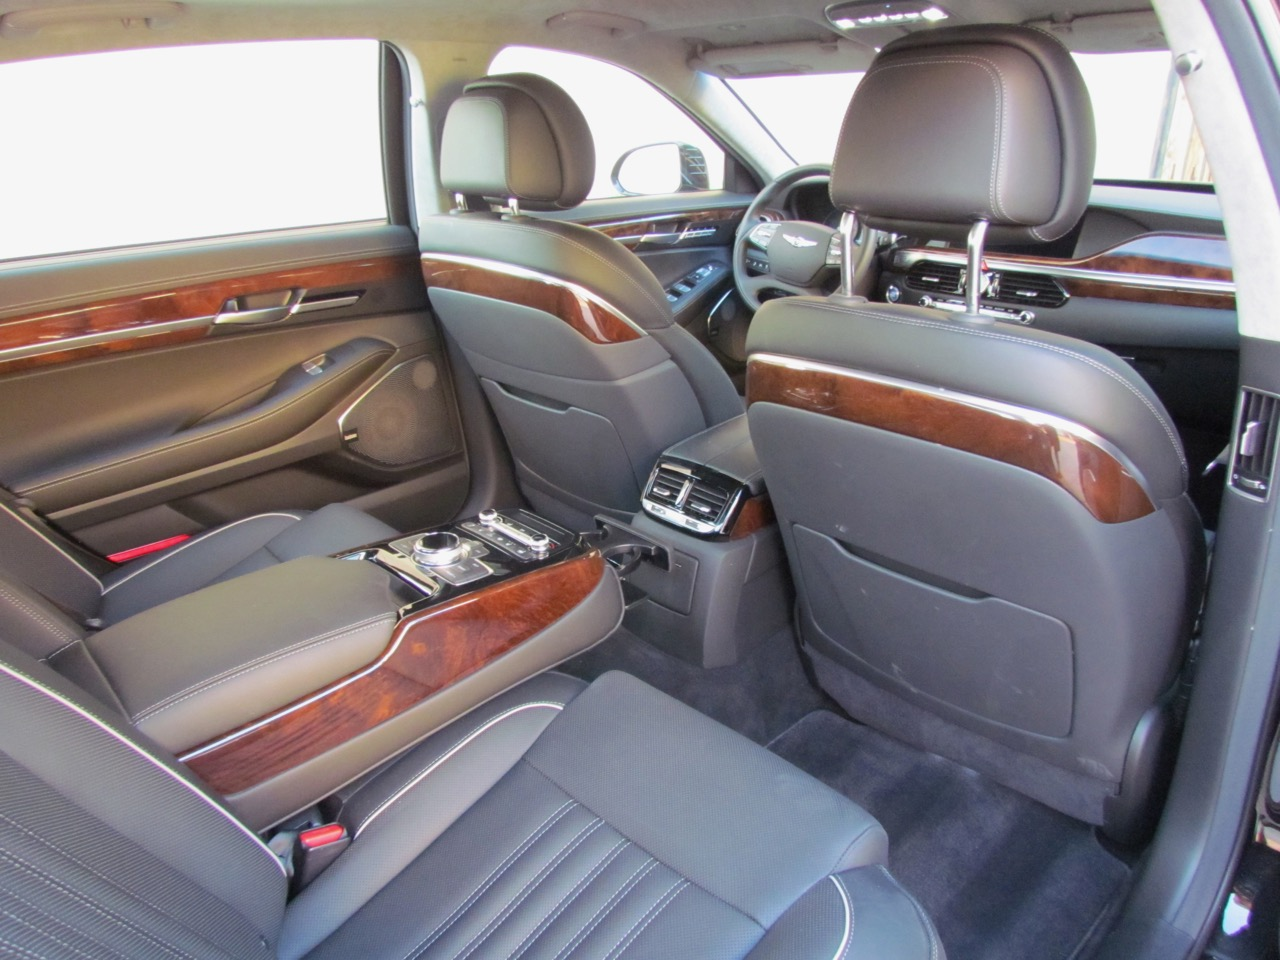 Limo-level luxury in the G90